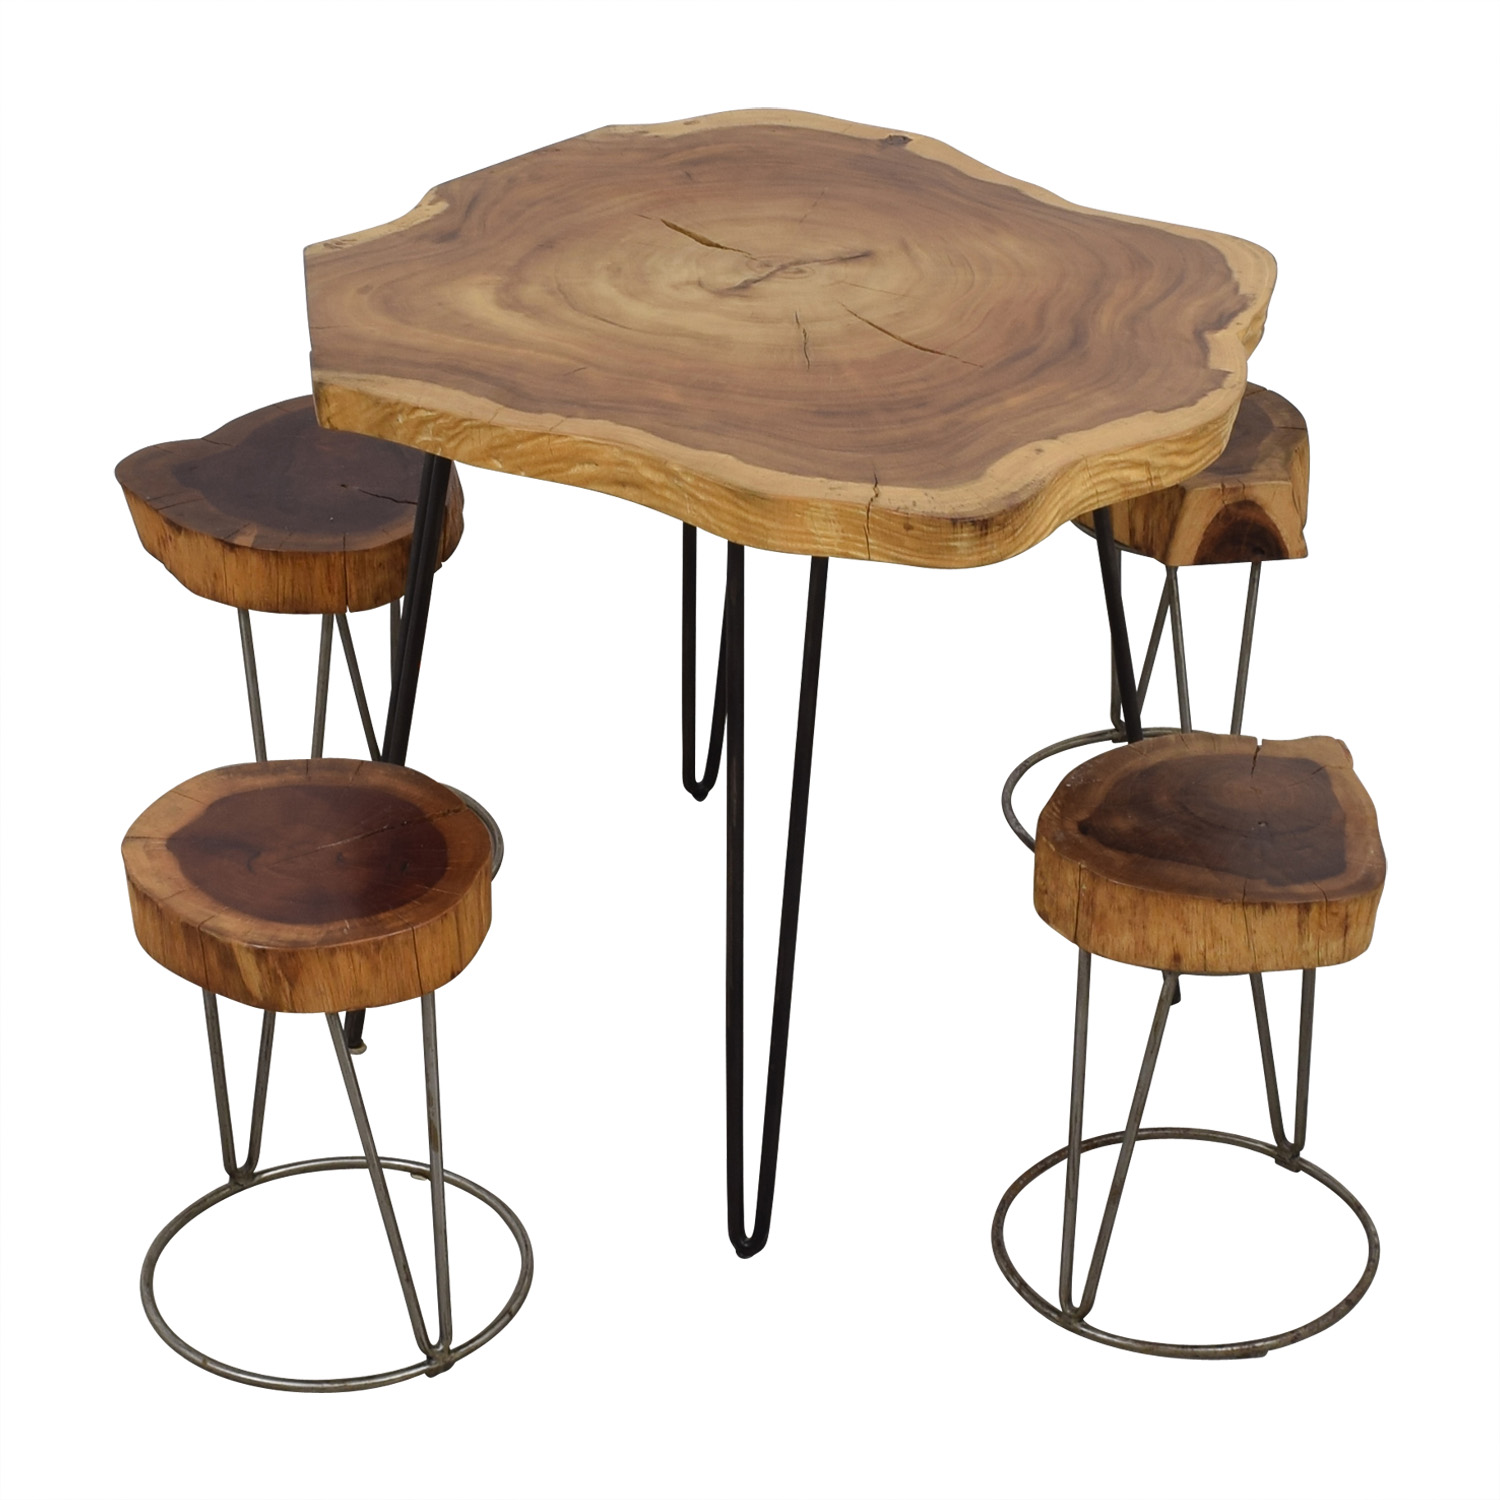 buy From the Source Custom Raw Rustic Wooden Table and Stools From the Source